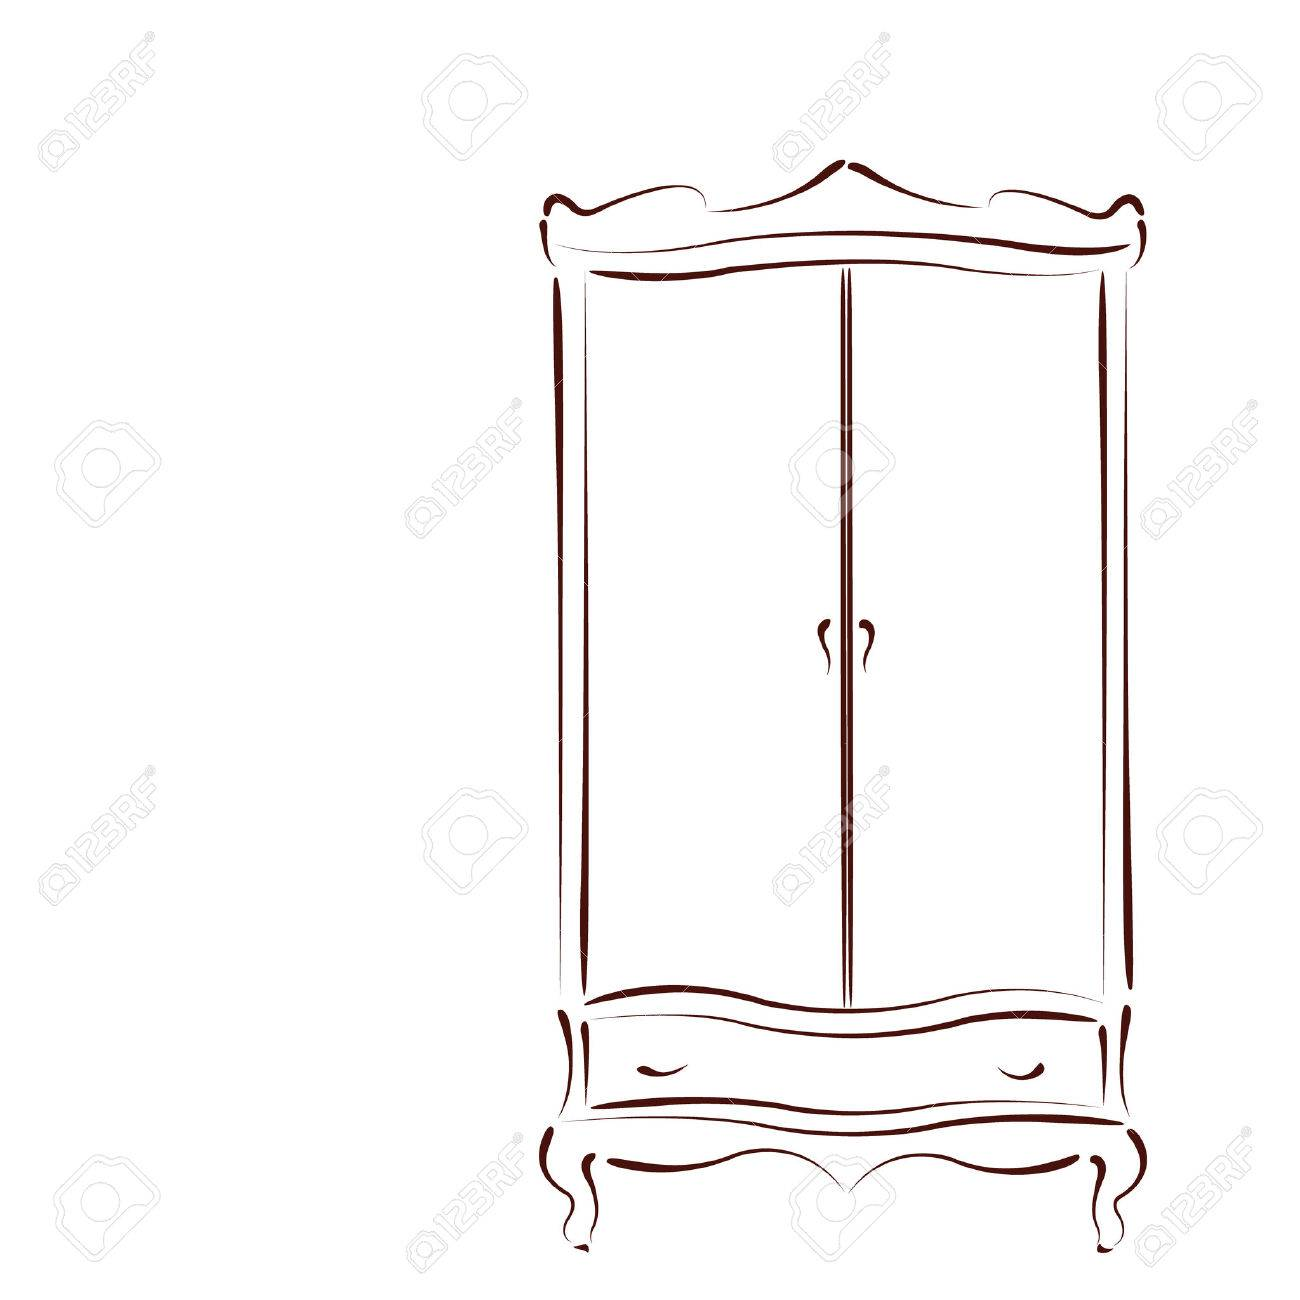 wardrobe template. sketched vintage wardrobe isolated on white background design template for label banner or postcard a